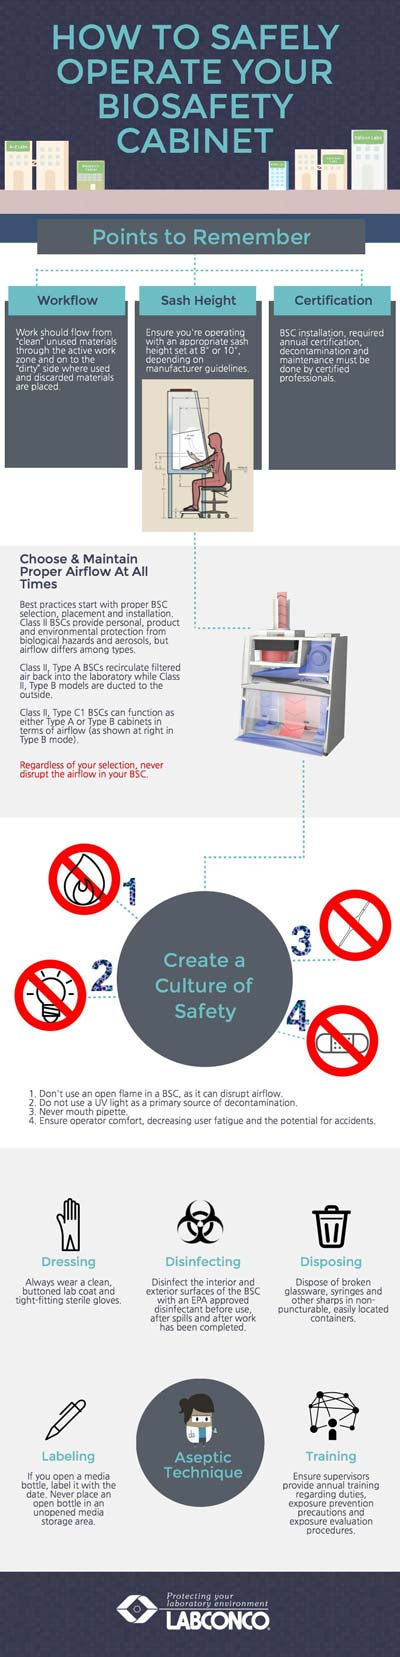 How to Safely Operate a BSC Infographic